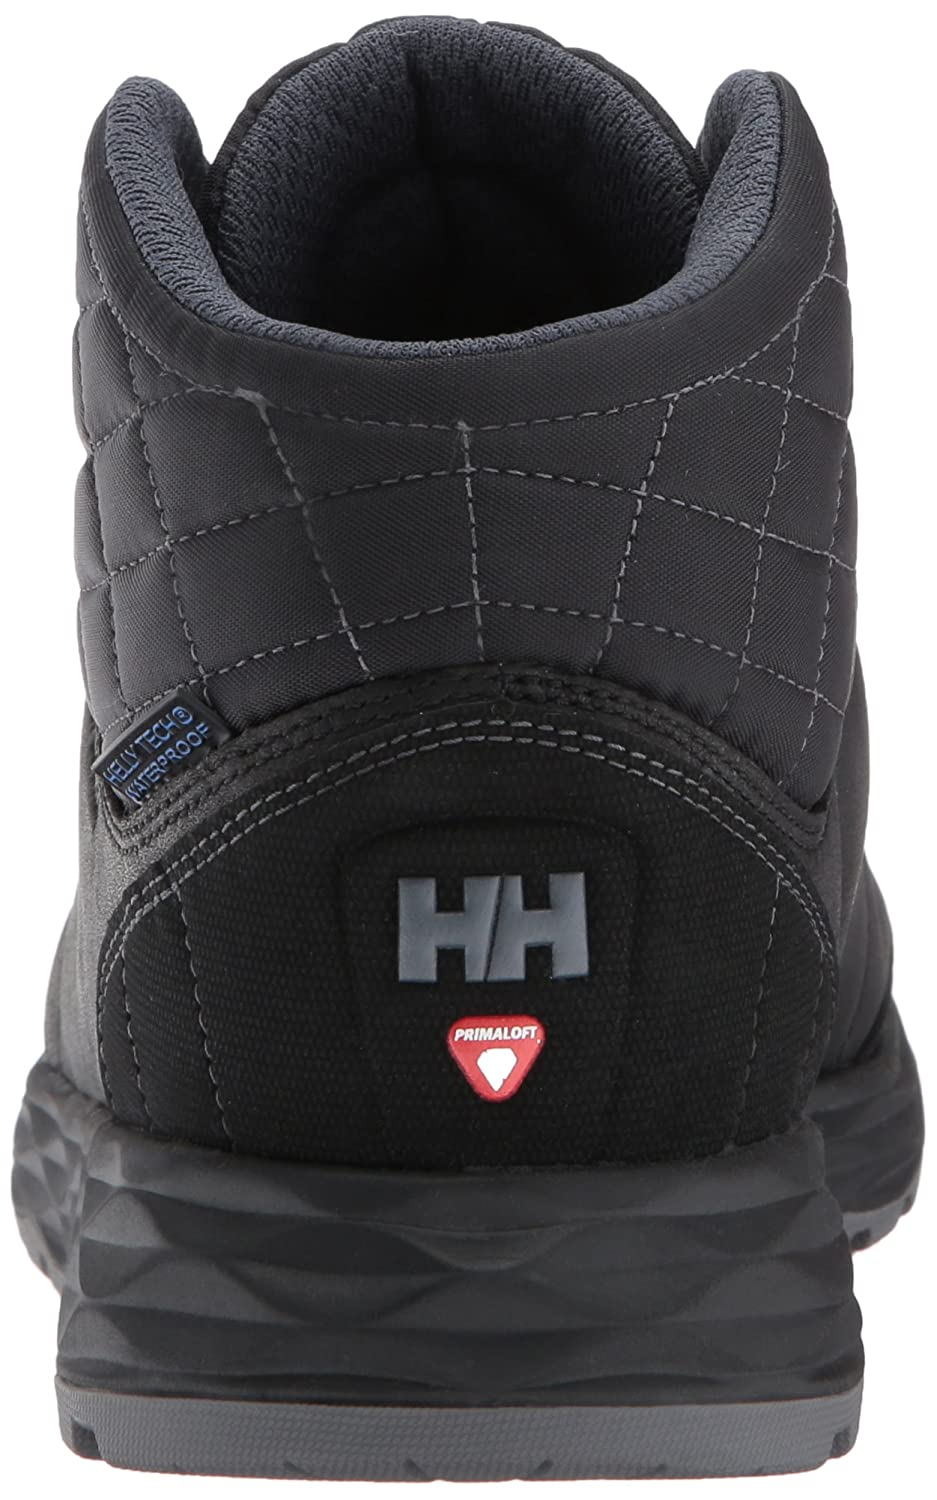 Helly Hansen Ten-Below HT, Zapatos de Cordones Oxford para Hombre, Negro (Negro), 42 EU